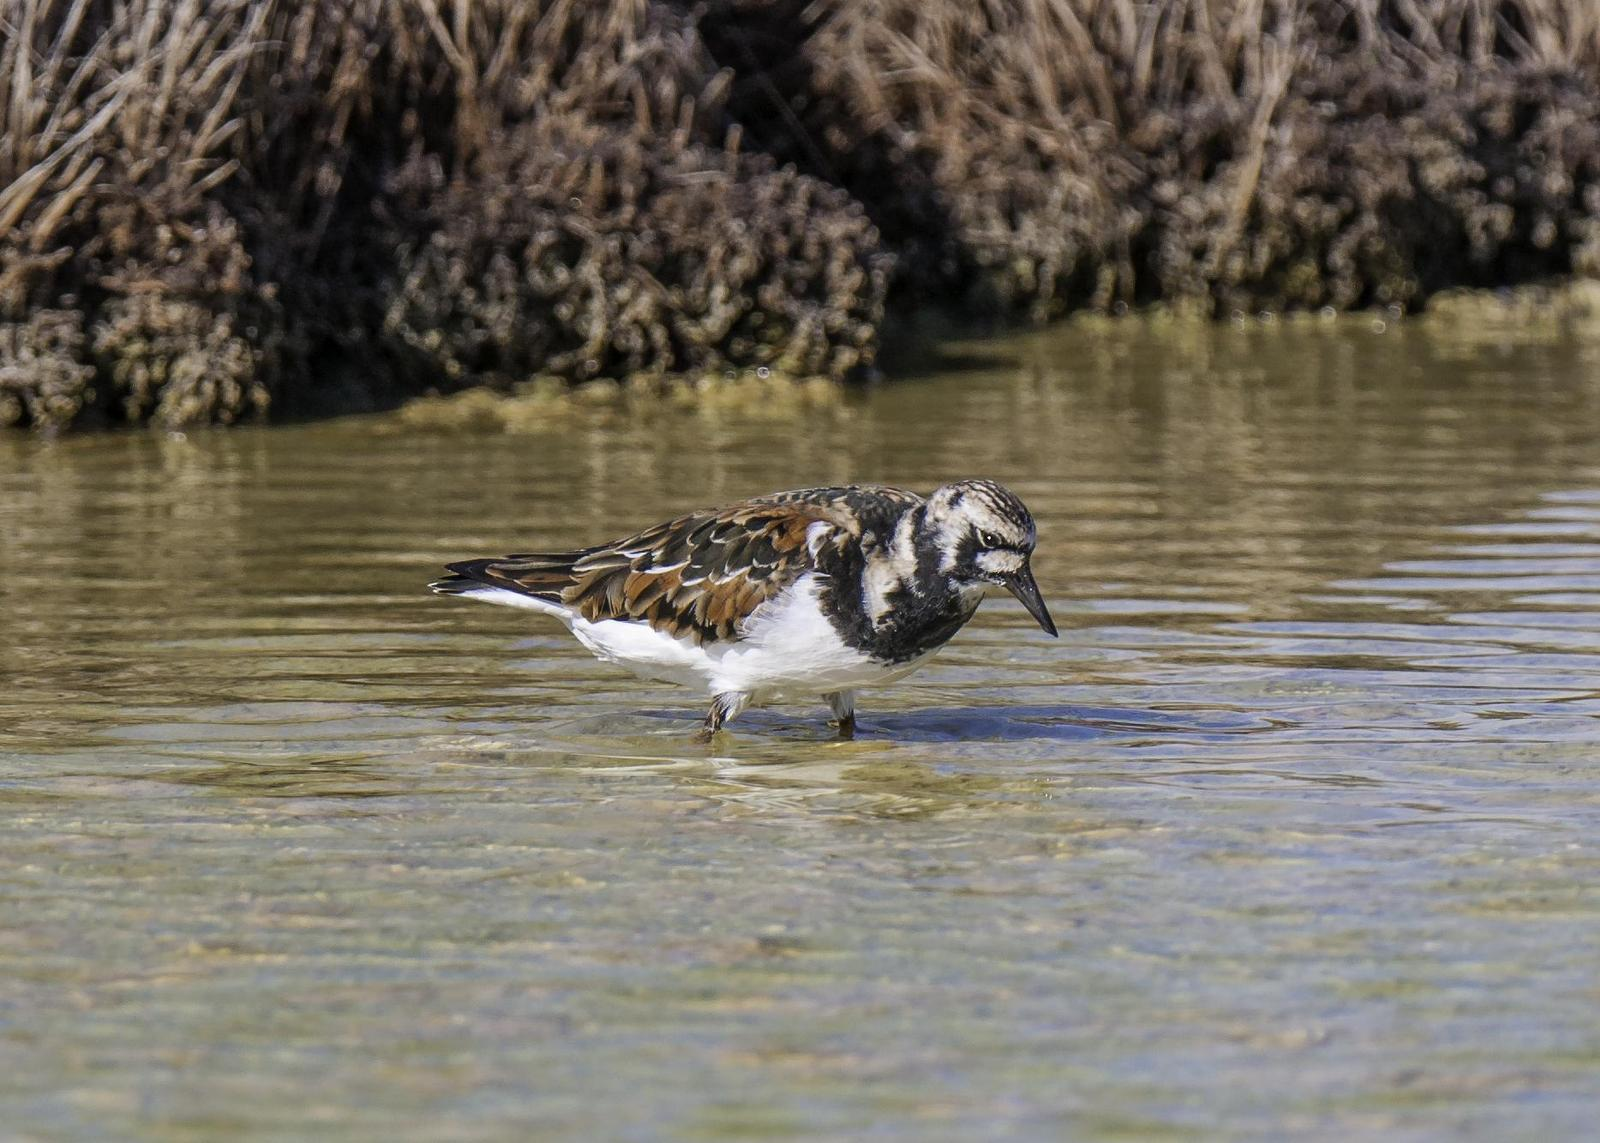 Ruddy Turnstone Photo by Mason Rose